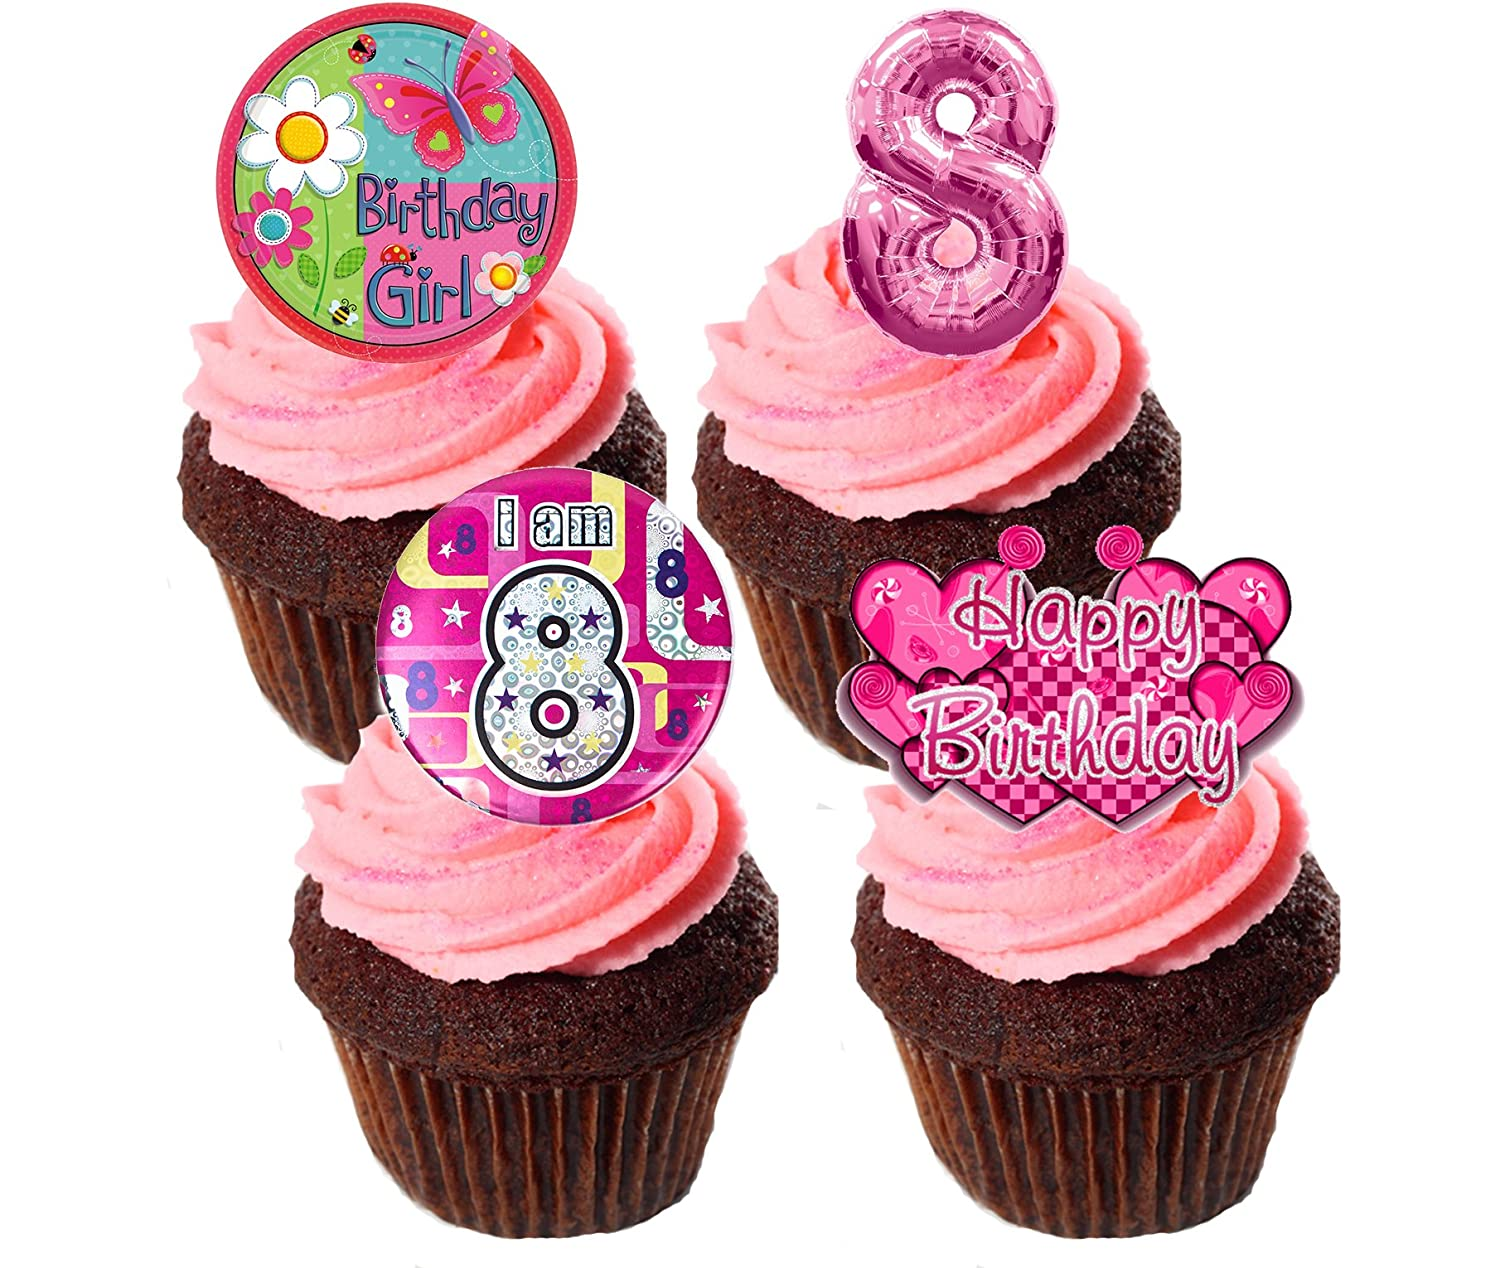 Awe Inspiring 8Th Birthday Girl Edible Cupcake Toppers Pink Stand Up Wafer Funny Birthday Cards Online Elaedamsfinfo